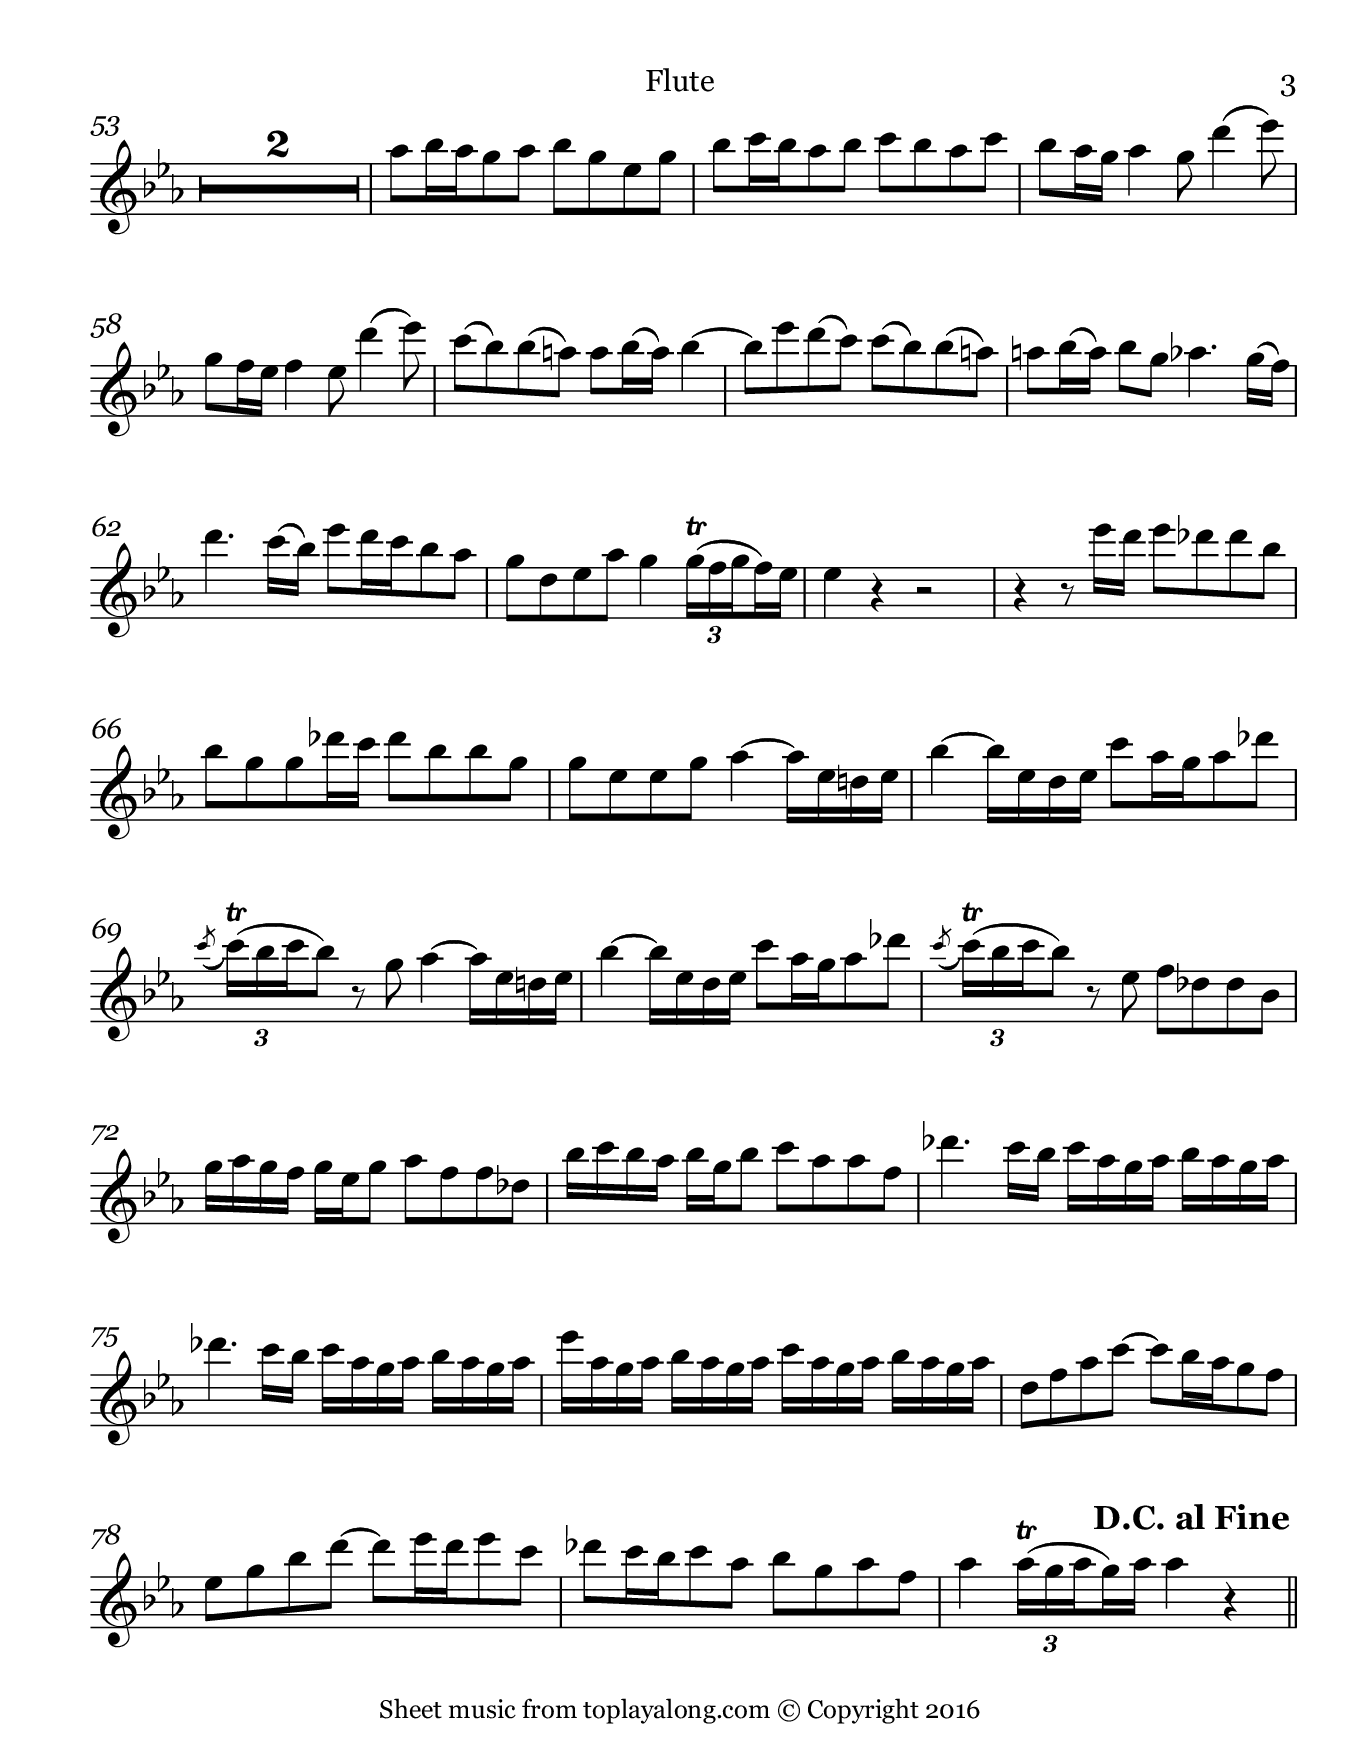 Sonata in F minor (II. Allegro) by Telemann. Sheet music for Flute, page 3.